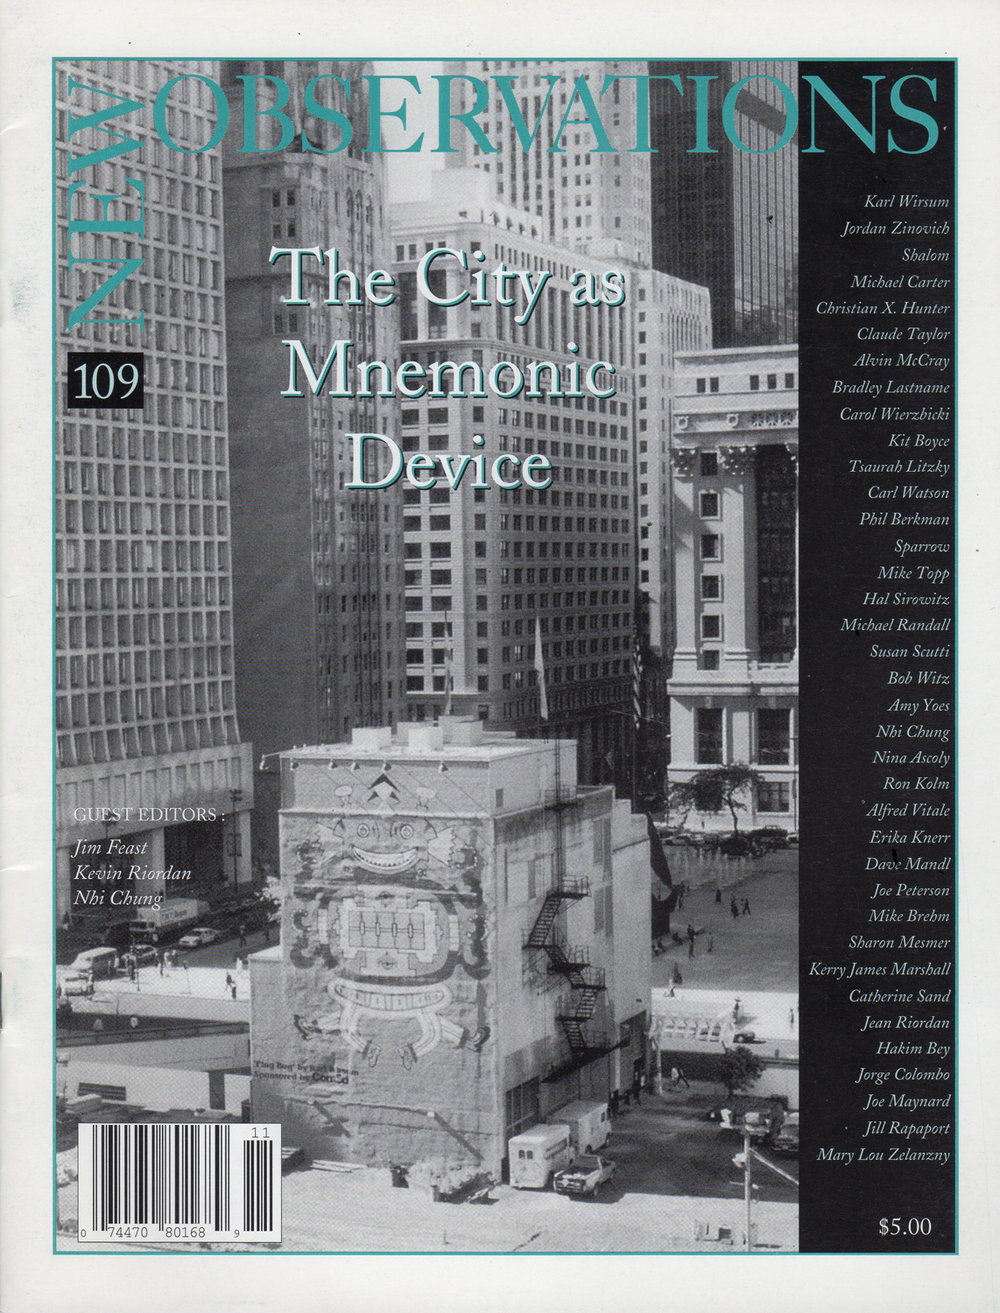 New Observations  - Issue #109 : The City as Mnemonic Device, New York, NY, November - December 1995.